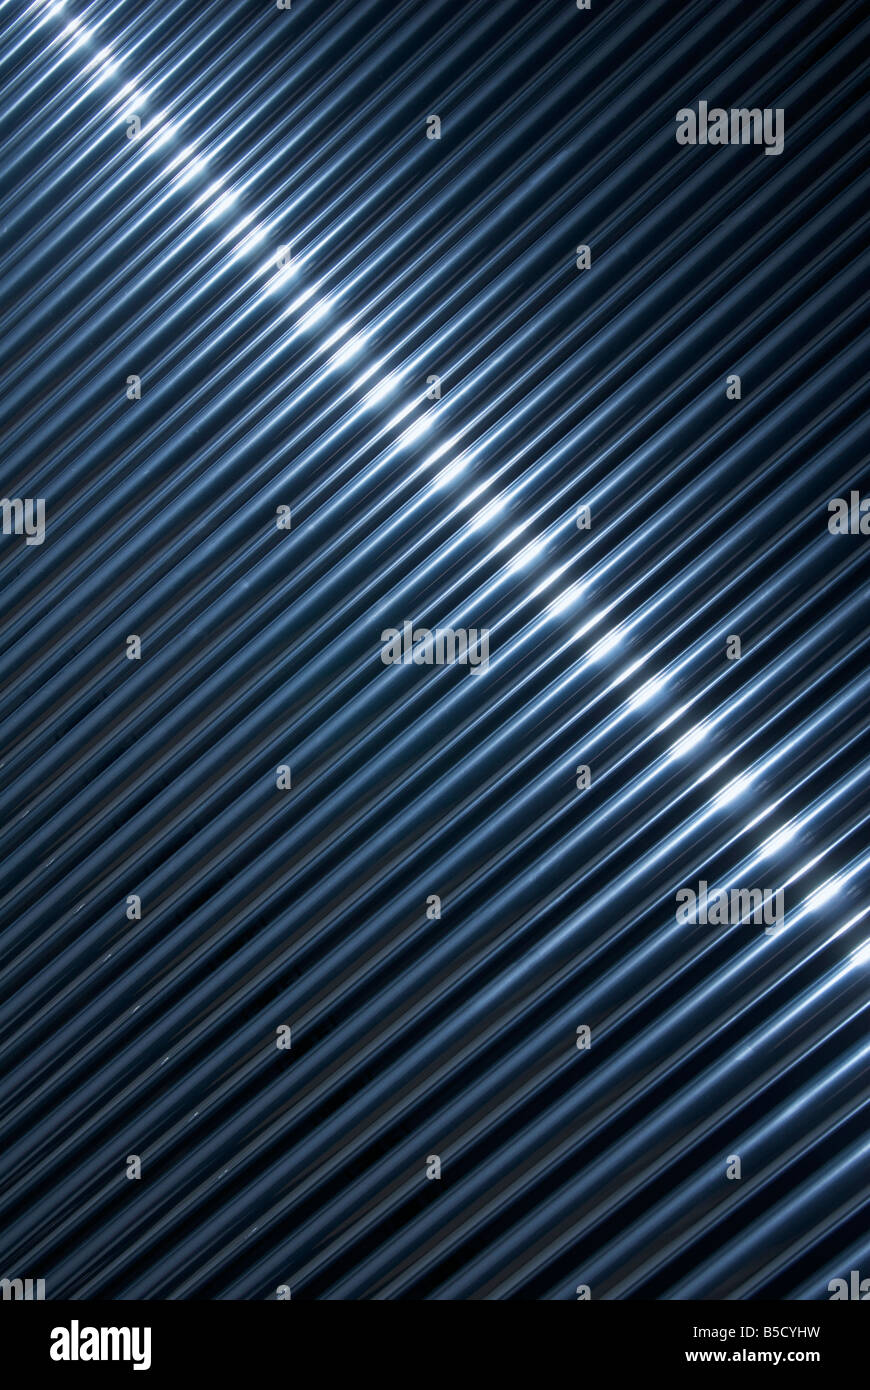 metallic tubes background - Stock Image